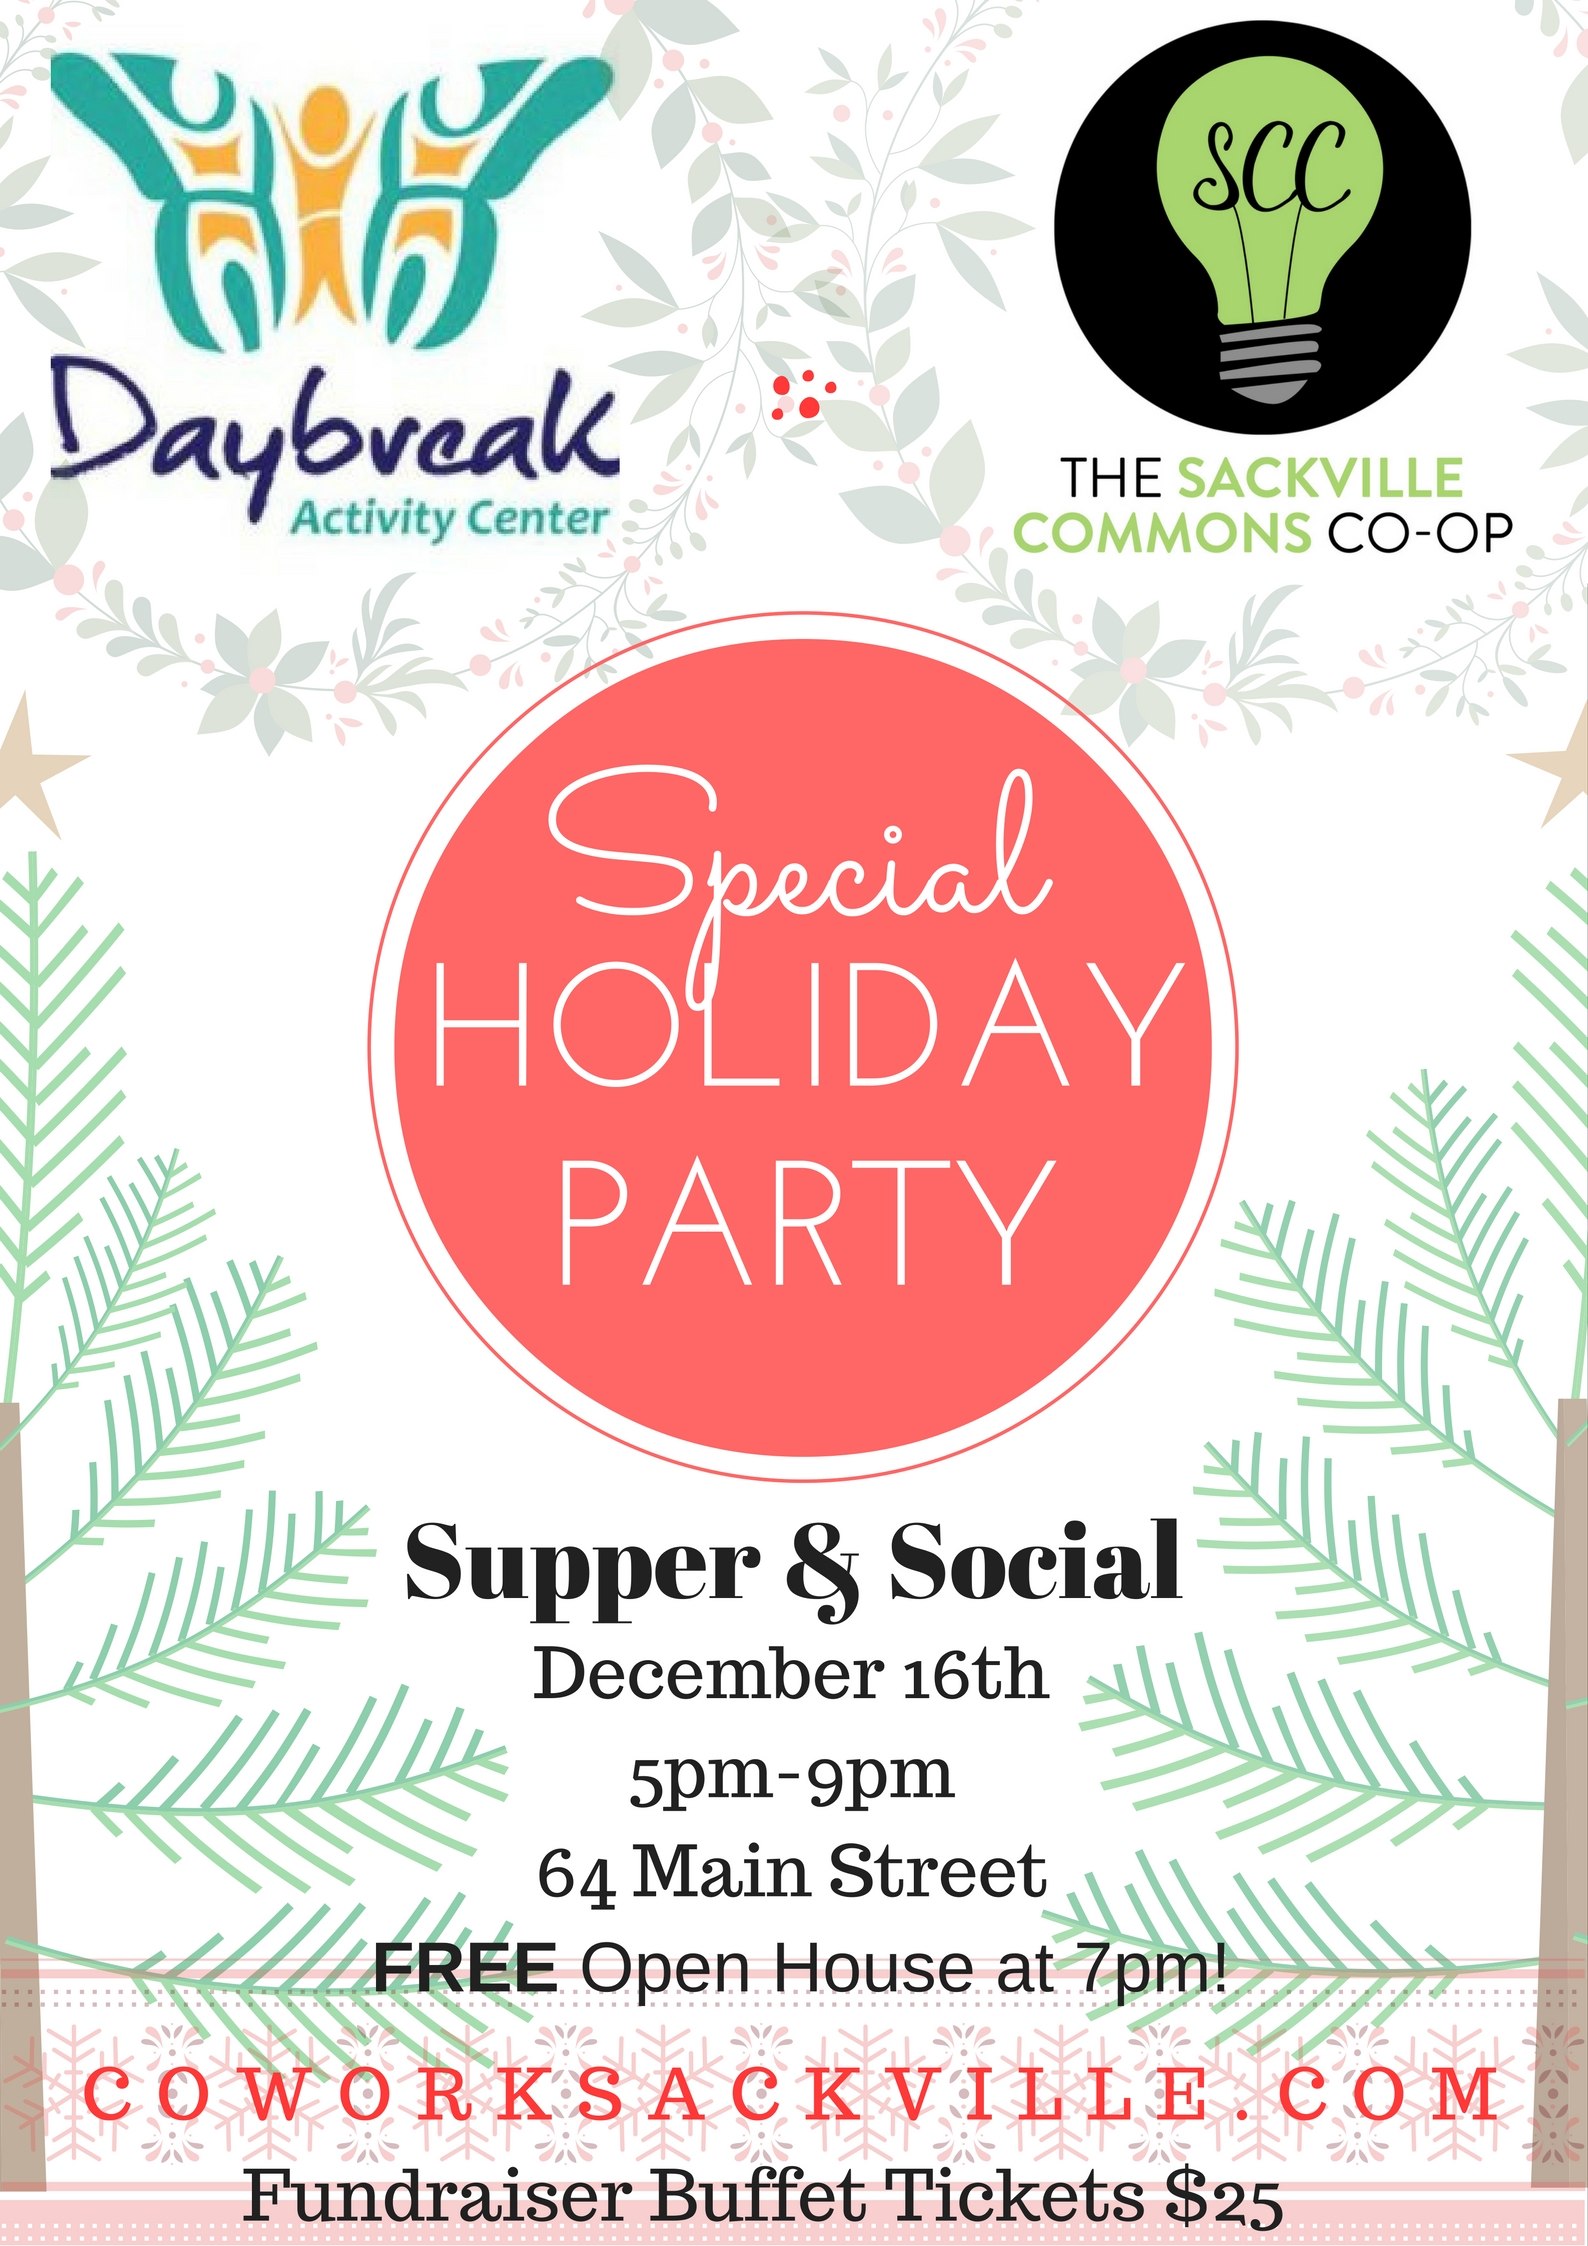 Special Holiday Party!